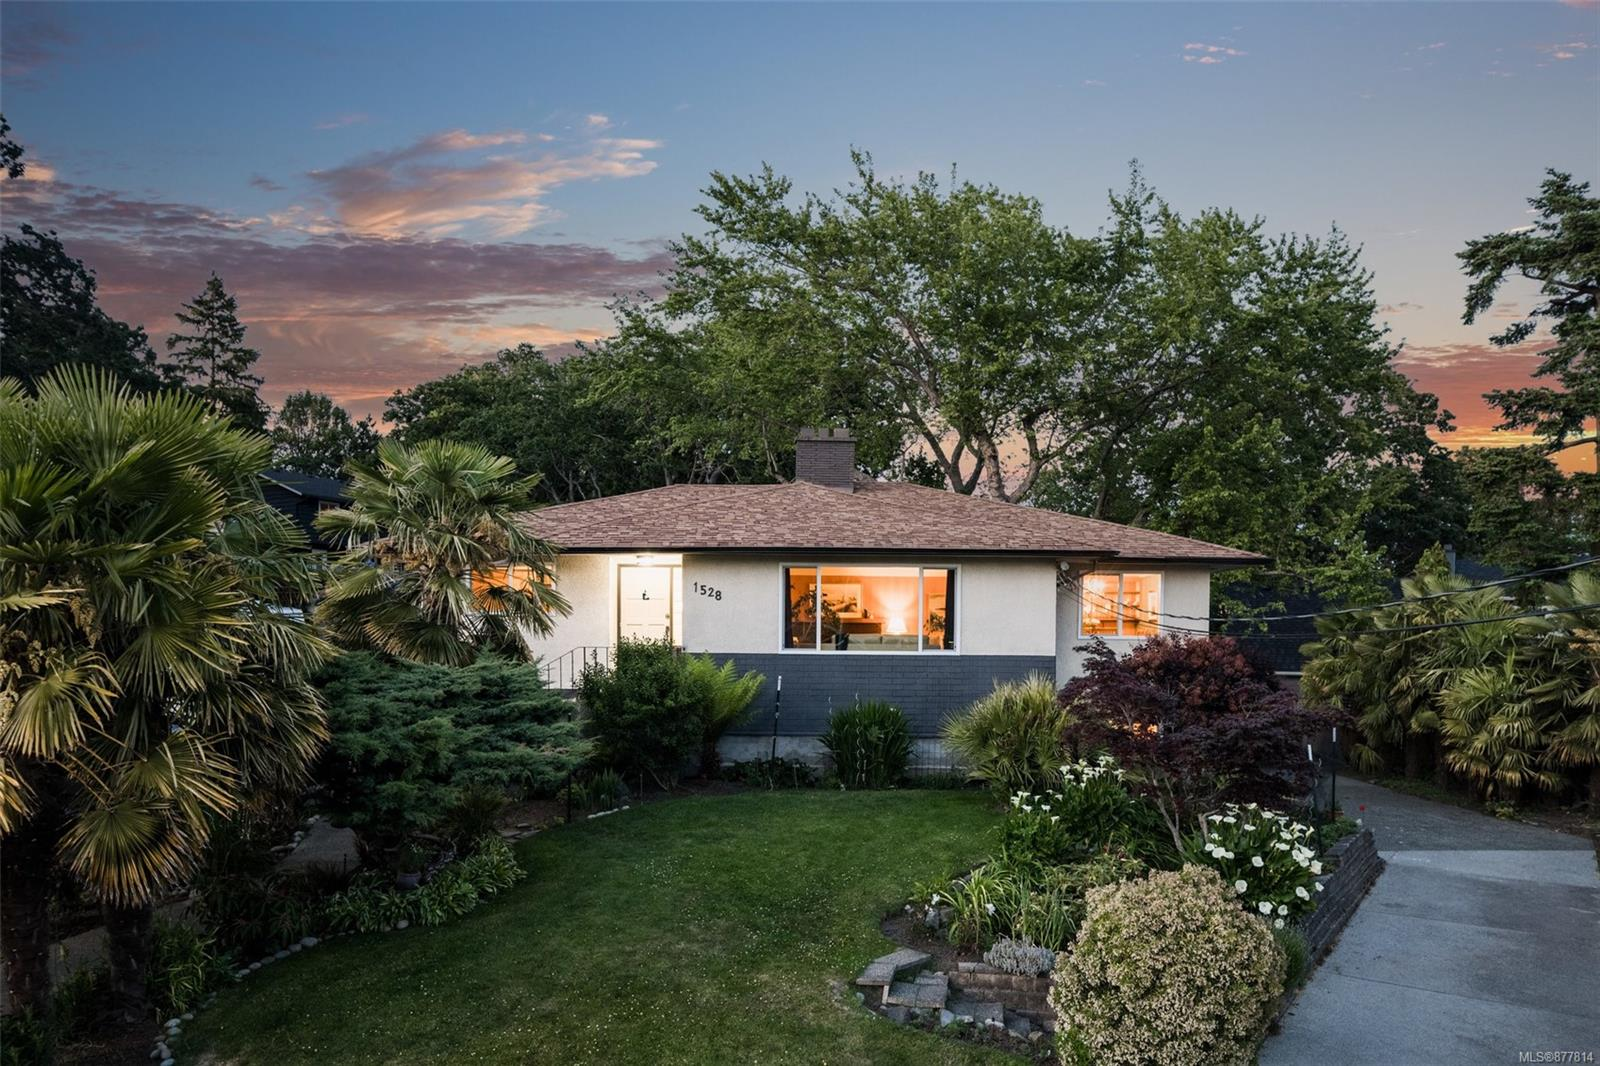 1528 Bywood Place, Rockland, Victoria